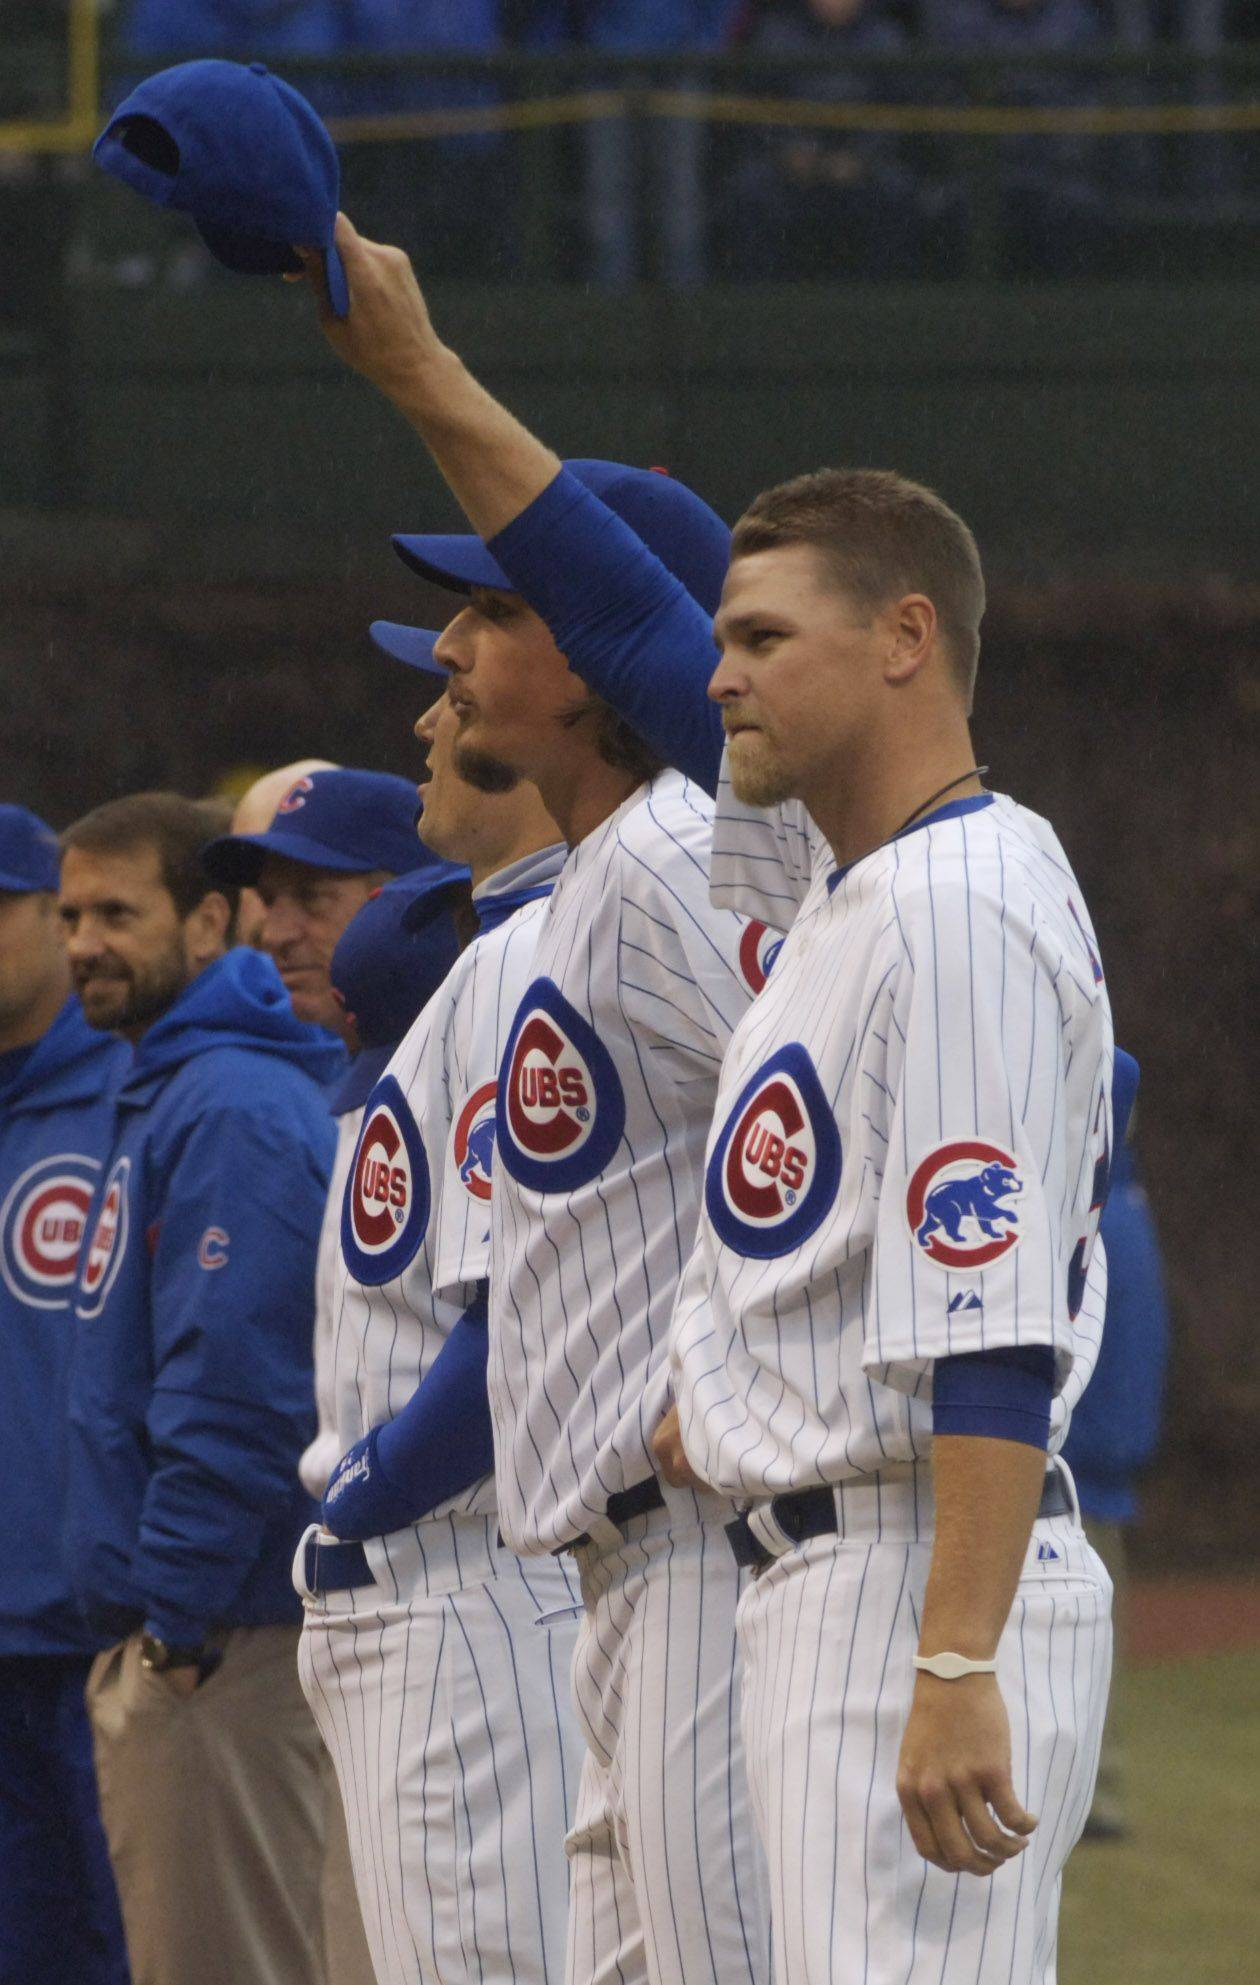 Cubs pitcher Kerry Wood acknowledges the fans on Opening Day at Wrigley Field Friday.